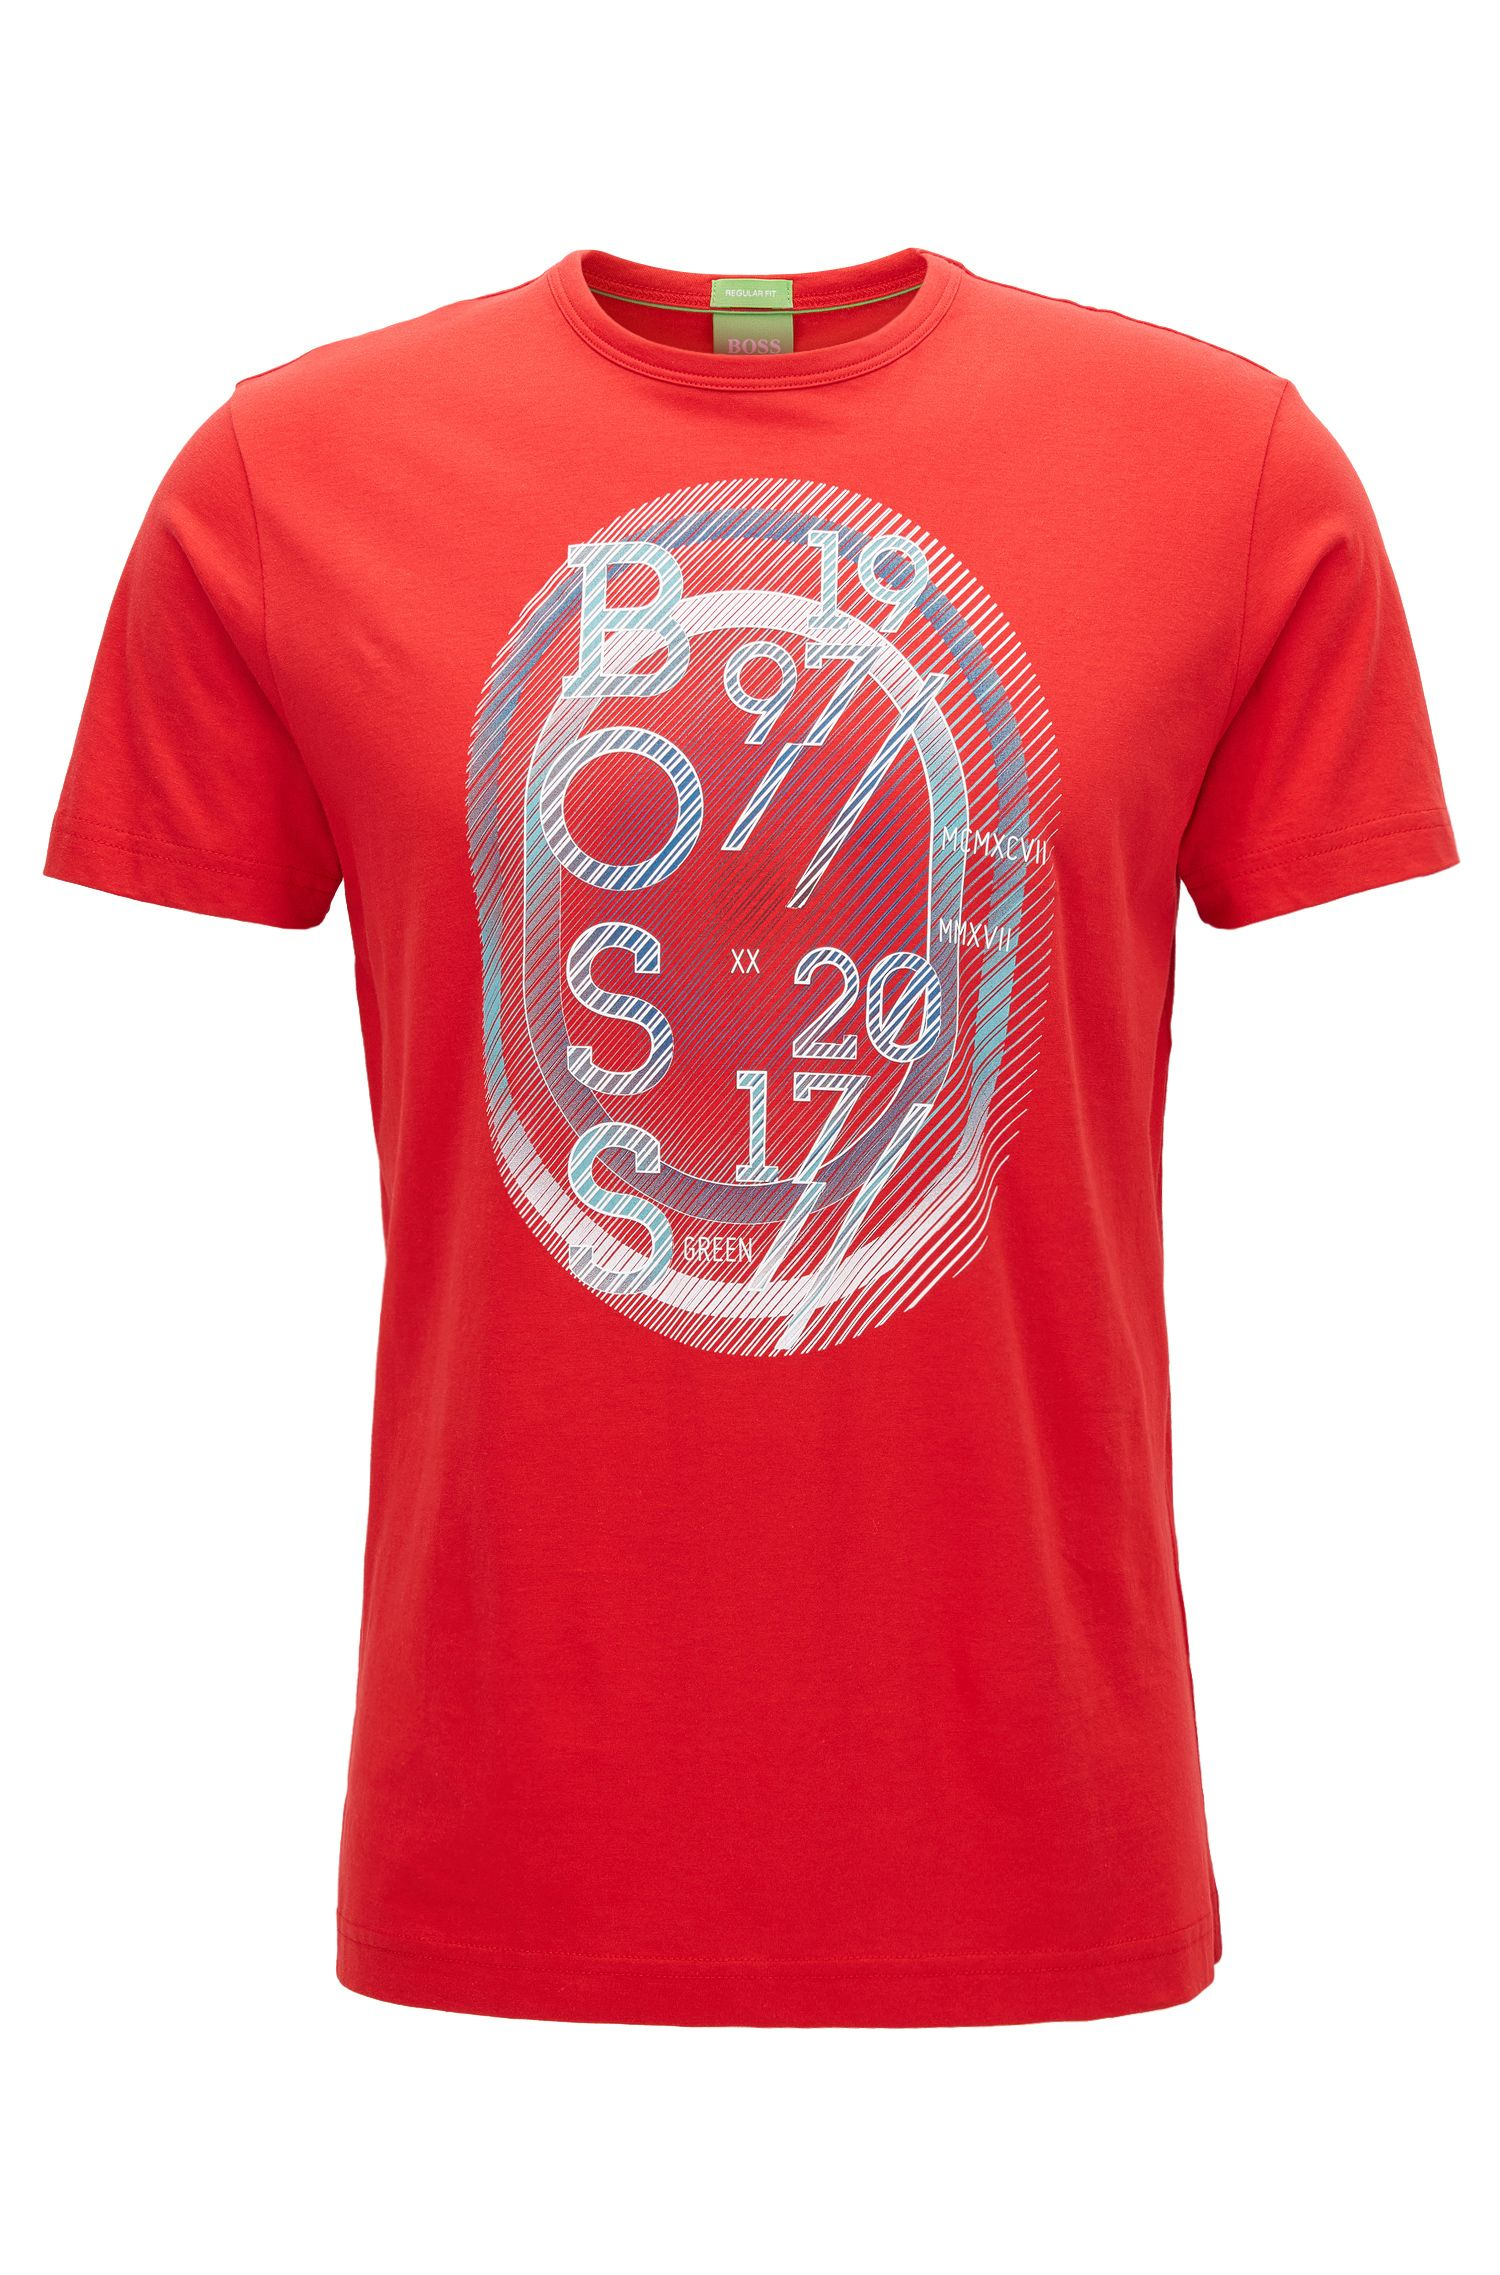 Stretch Cotton Graphic T-Shirt   Tee